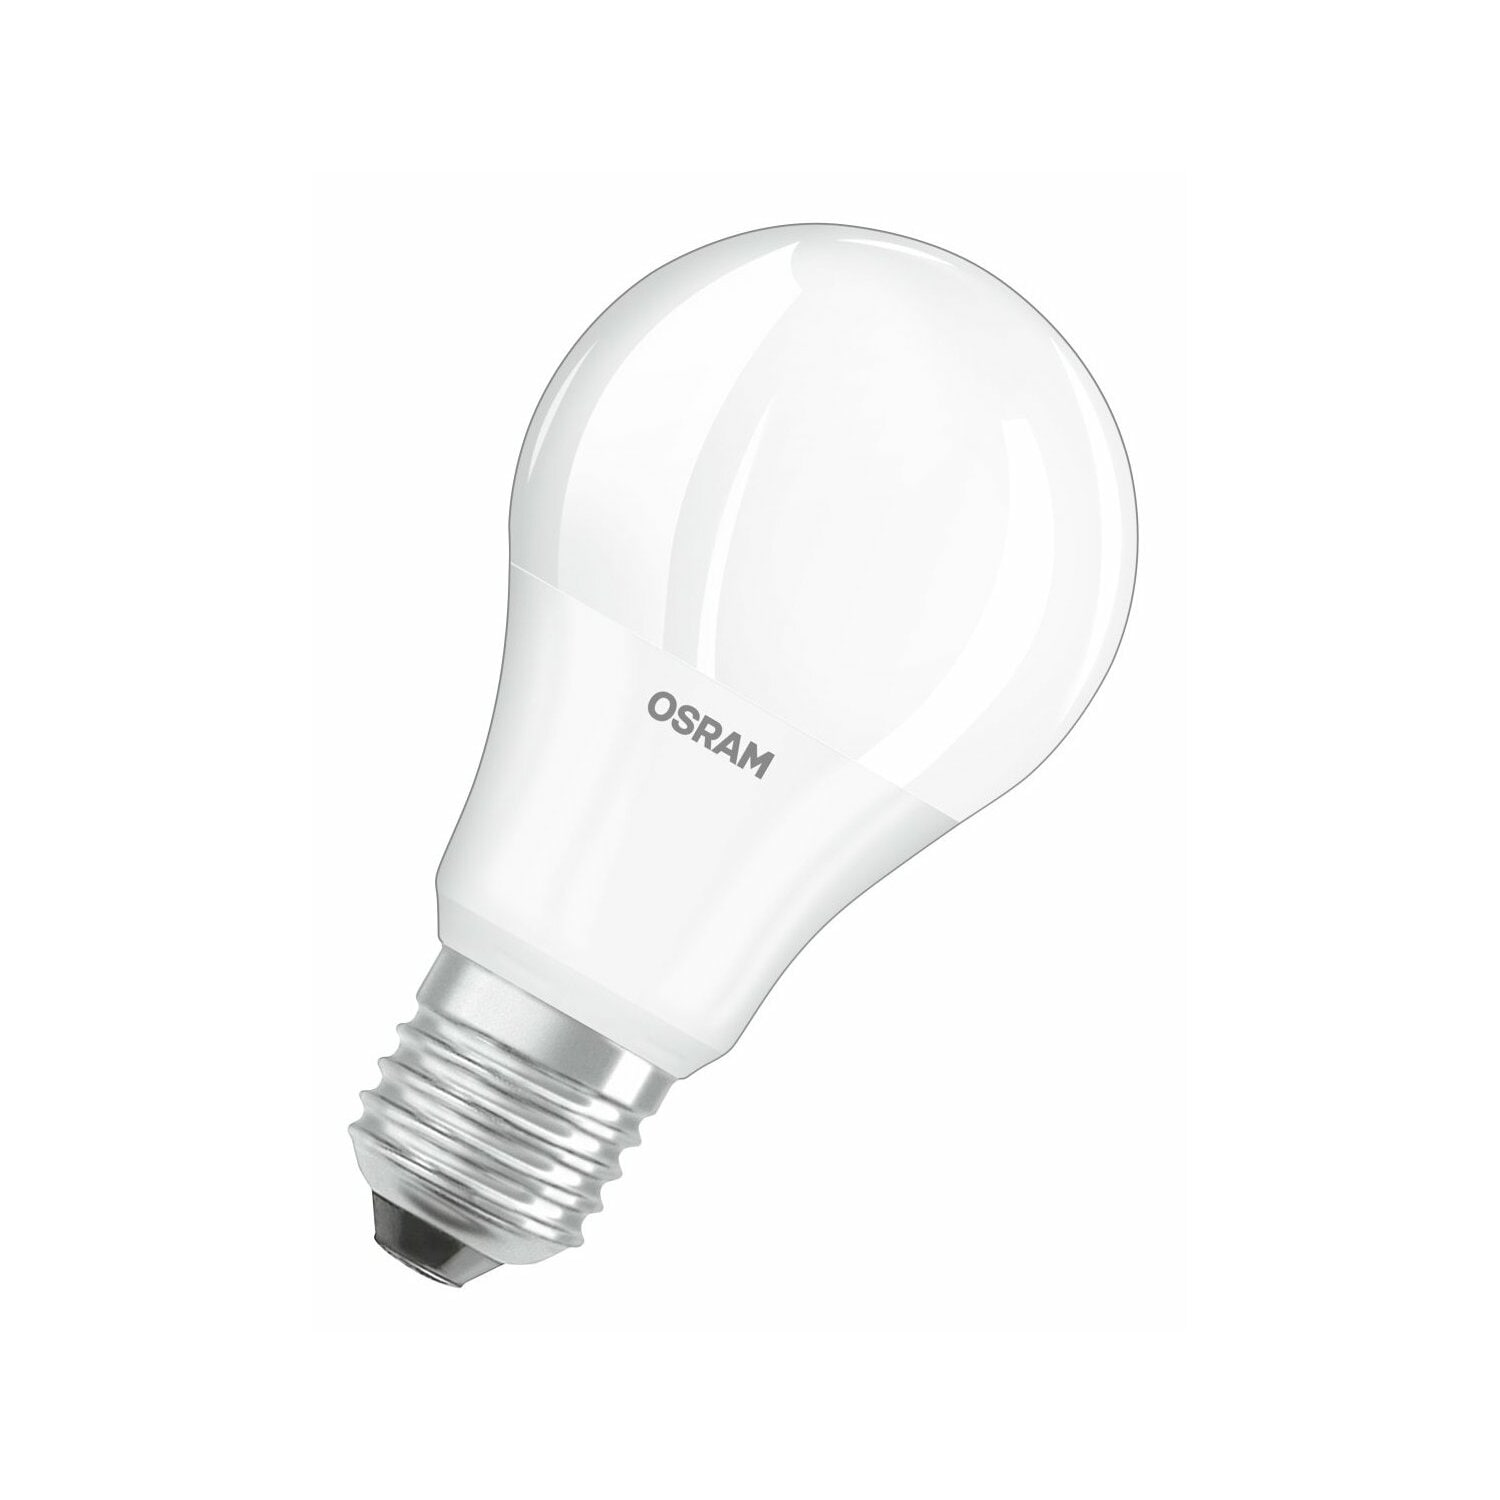 Żarówka LED OSRAM VALUE CLAS A 75 11.5 W/827 E27